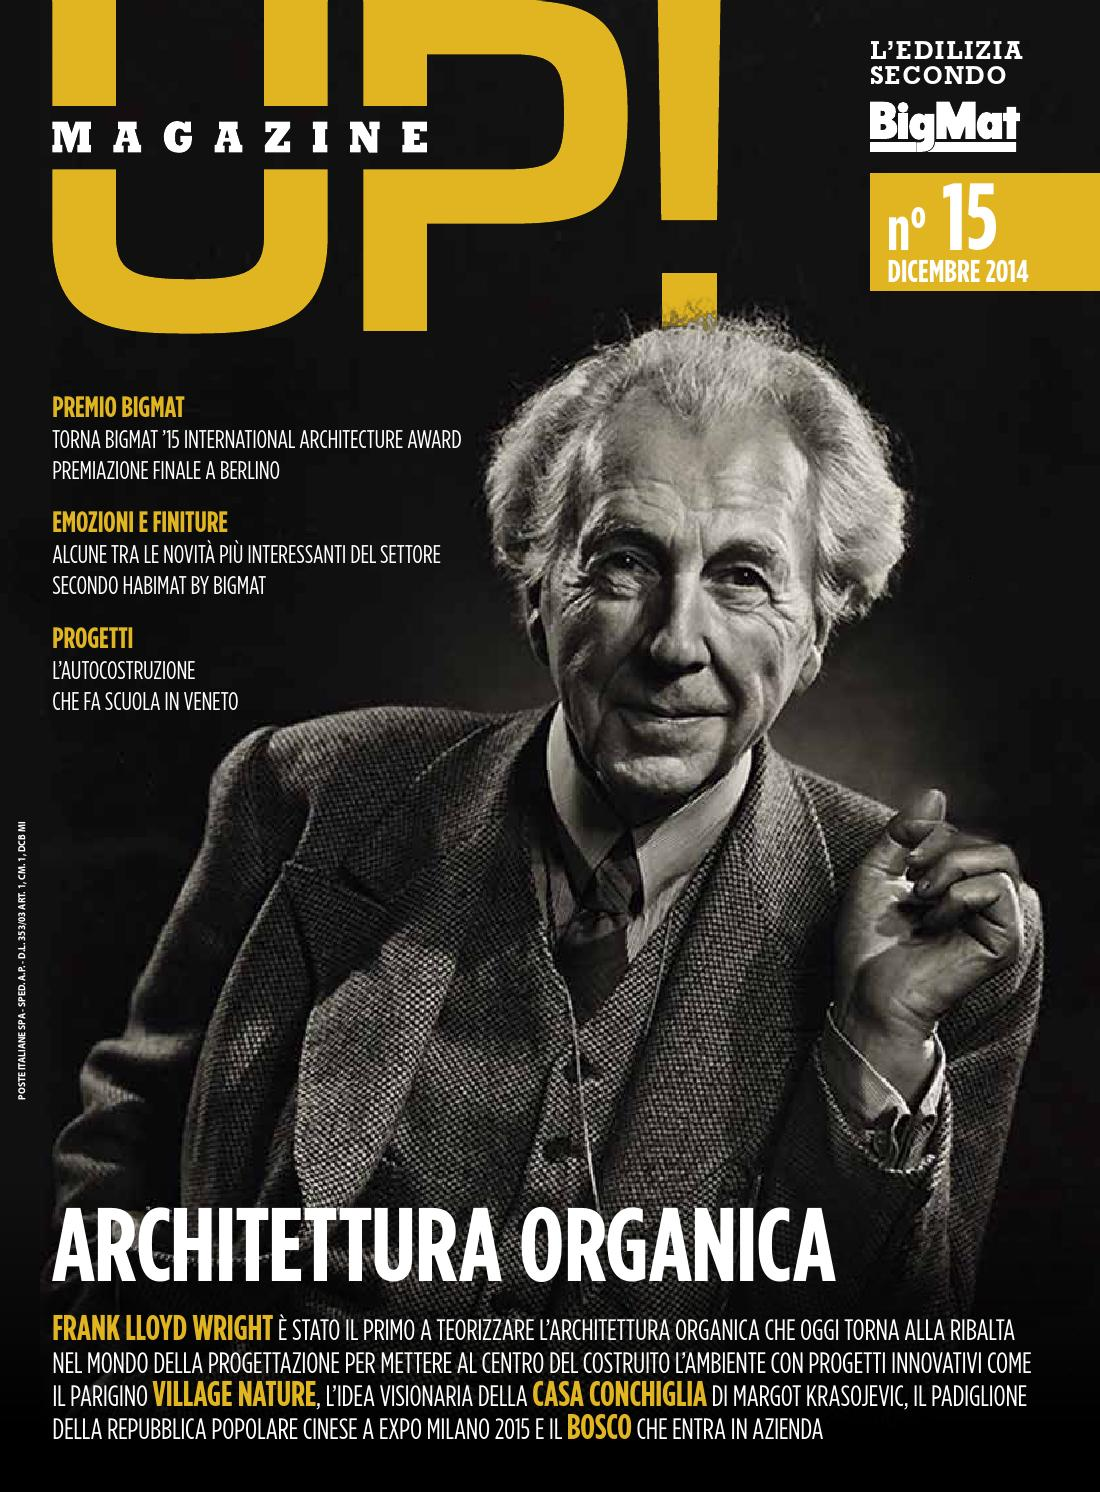 Up n 15 dicembre 2014 by bigmat issuu for Frank lloyd wright piani casa in vendita